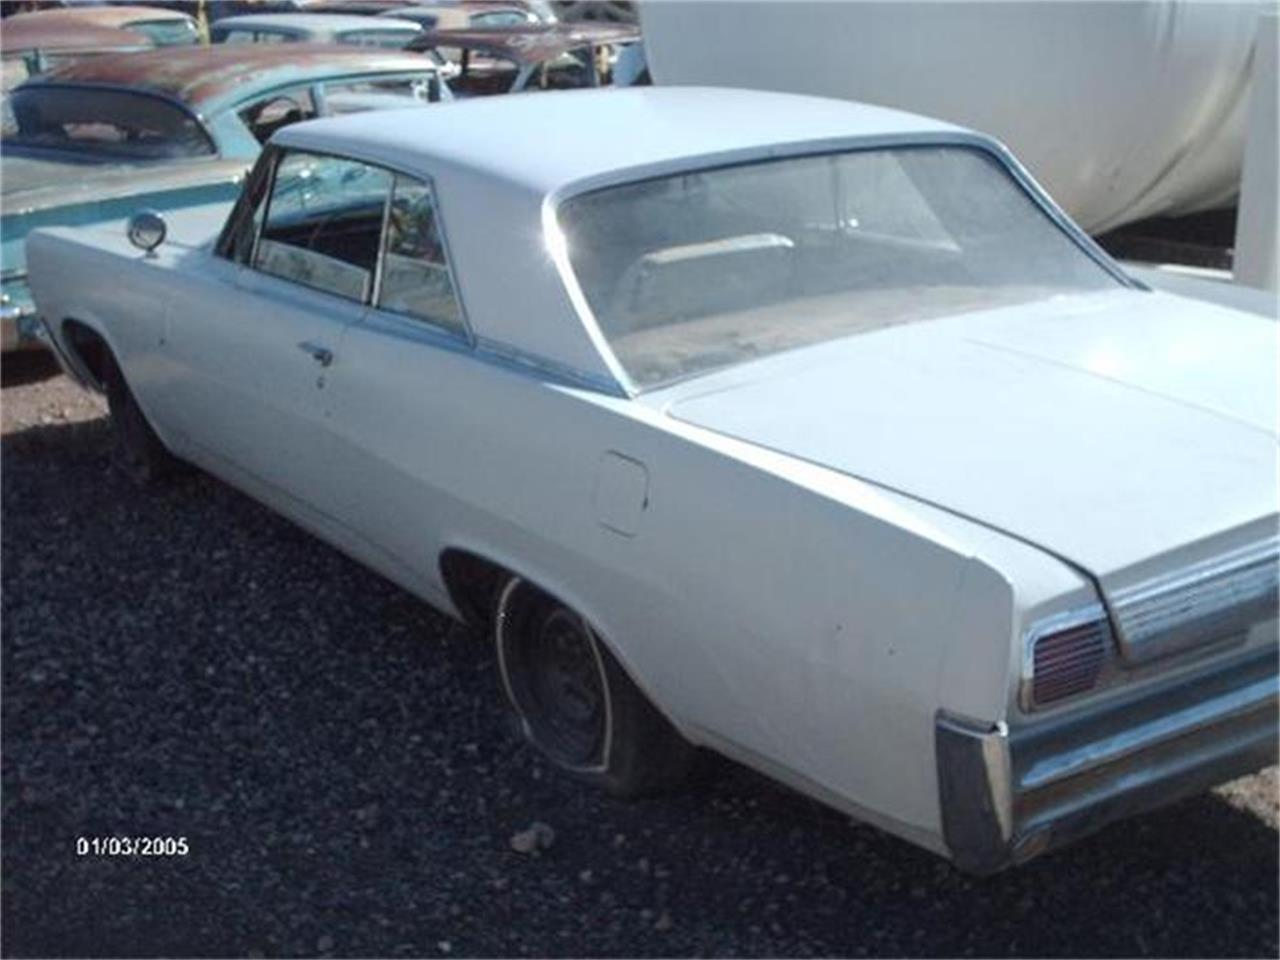 Large Picture of Classic '63 Pontiac Grand Prix - $3,000.00 - 8IF1